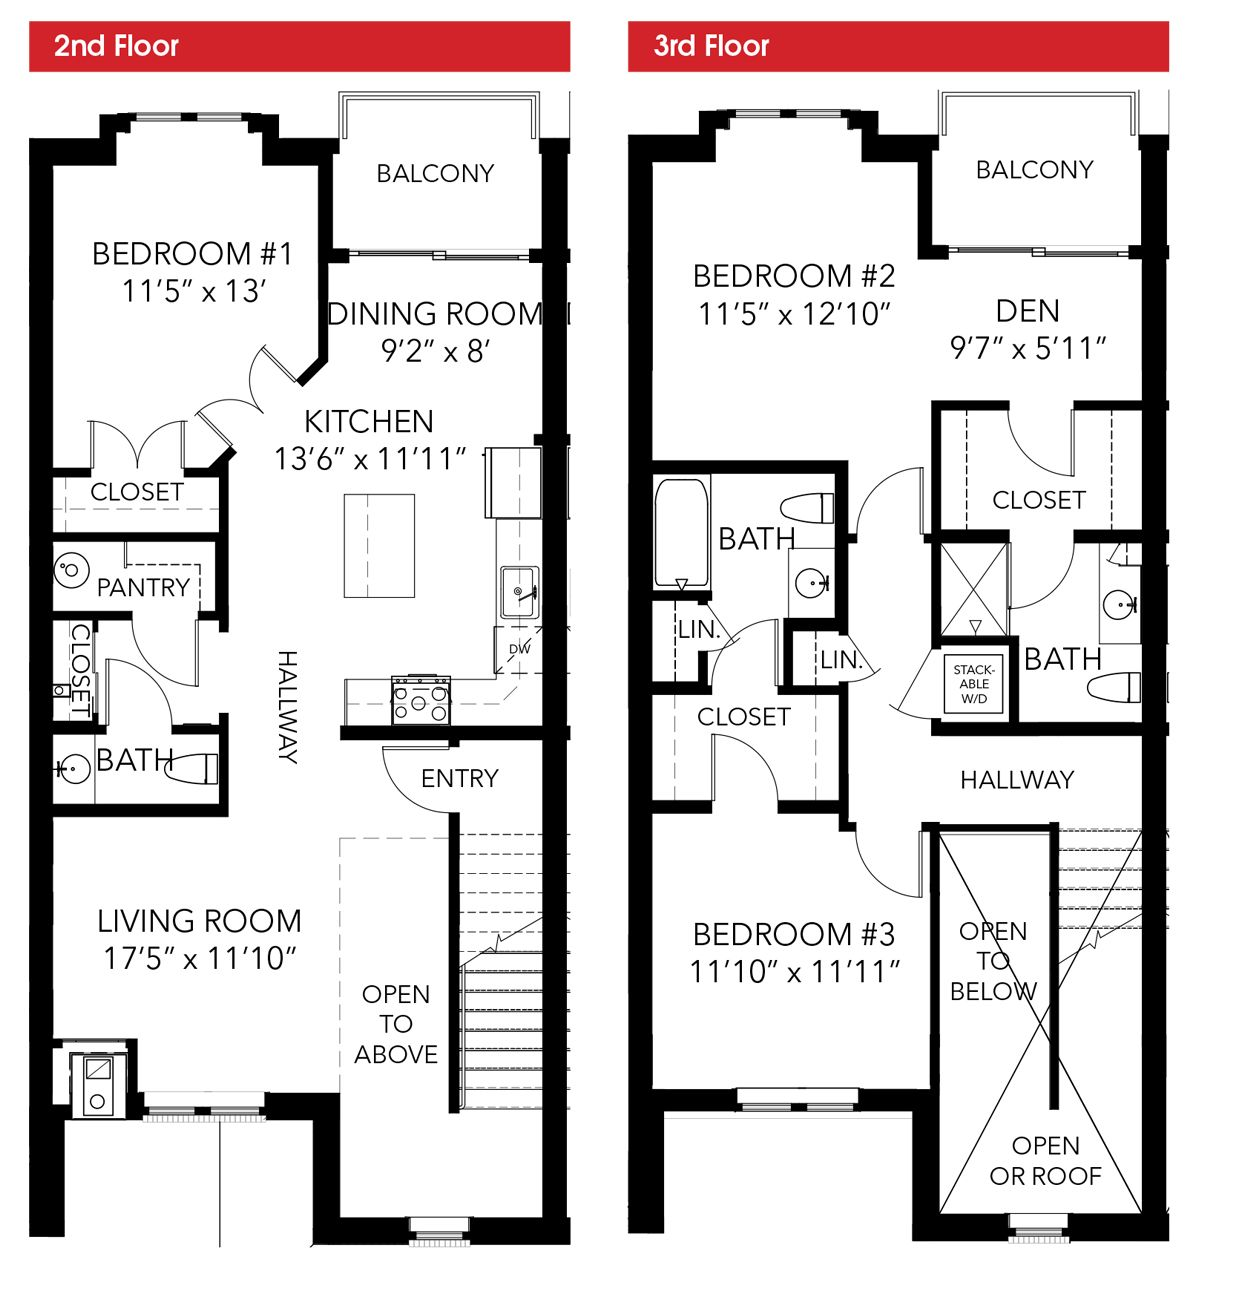 Oakbourne Floor Plan 3 Bedroom 2 Story Leed Certified Townhouse New House Pinterest